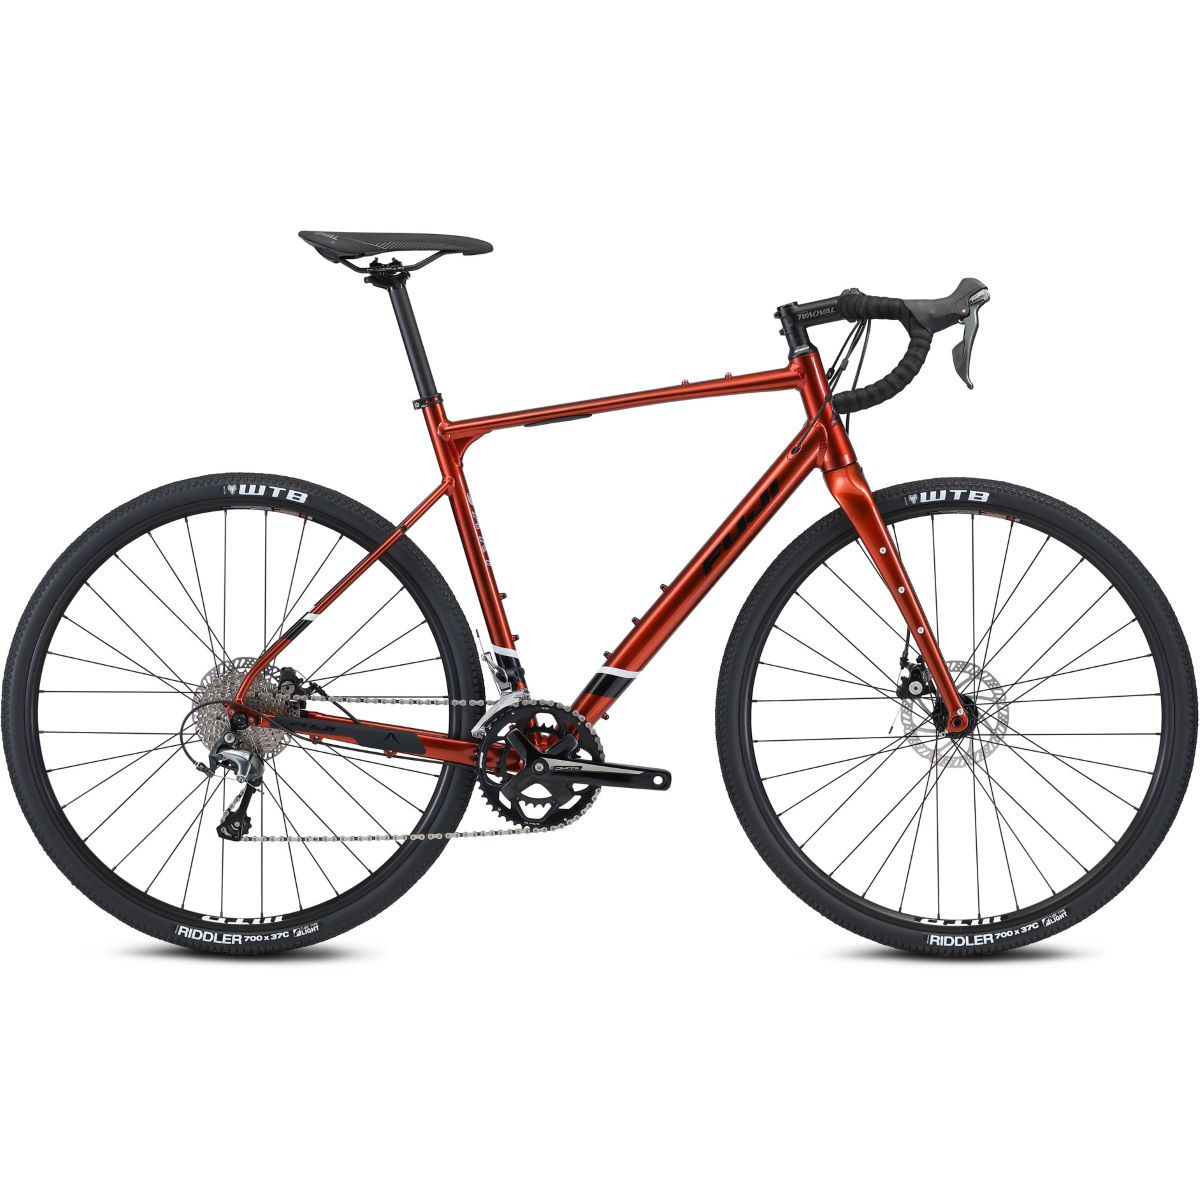 Fuji Fuji Jari 2.1 Gravel Bike (2021)   Adventure Bikes